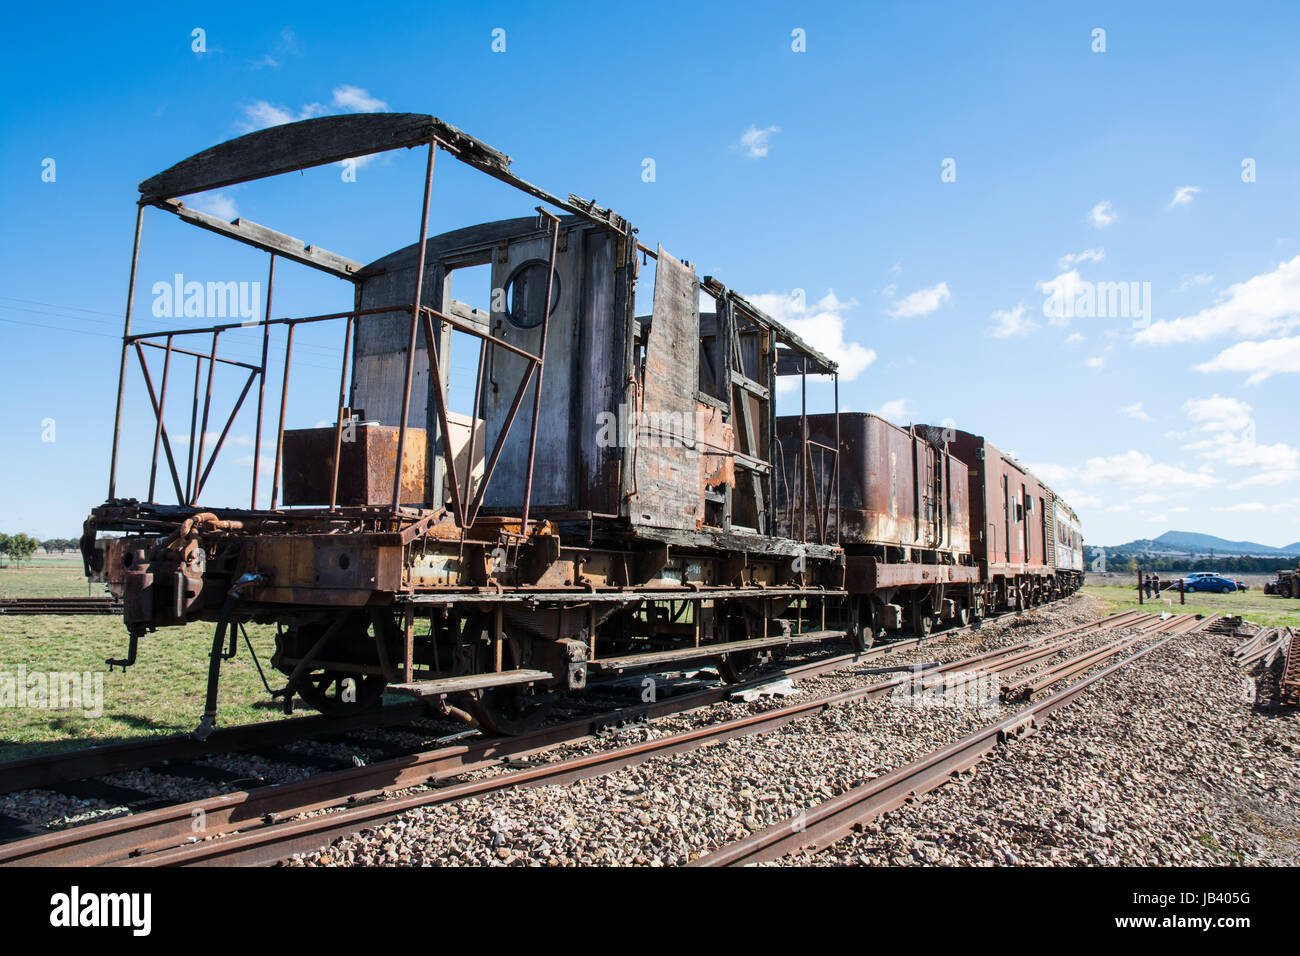 Decrepit old railroad carriages on a siding at Werris Creek NSW Australia. - Stock Image